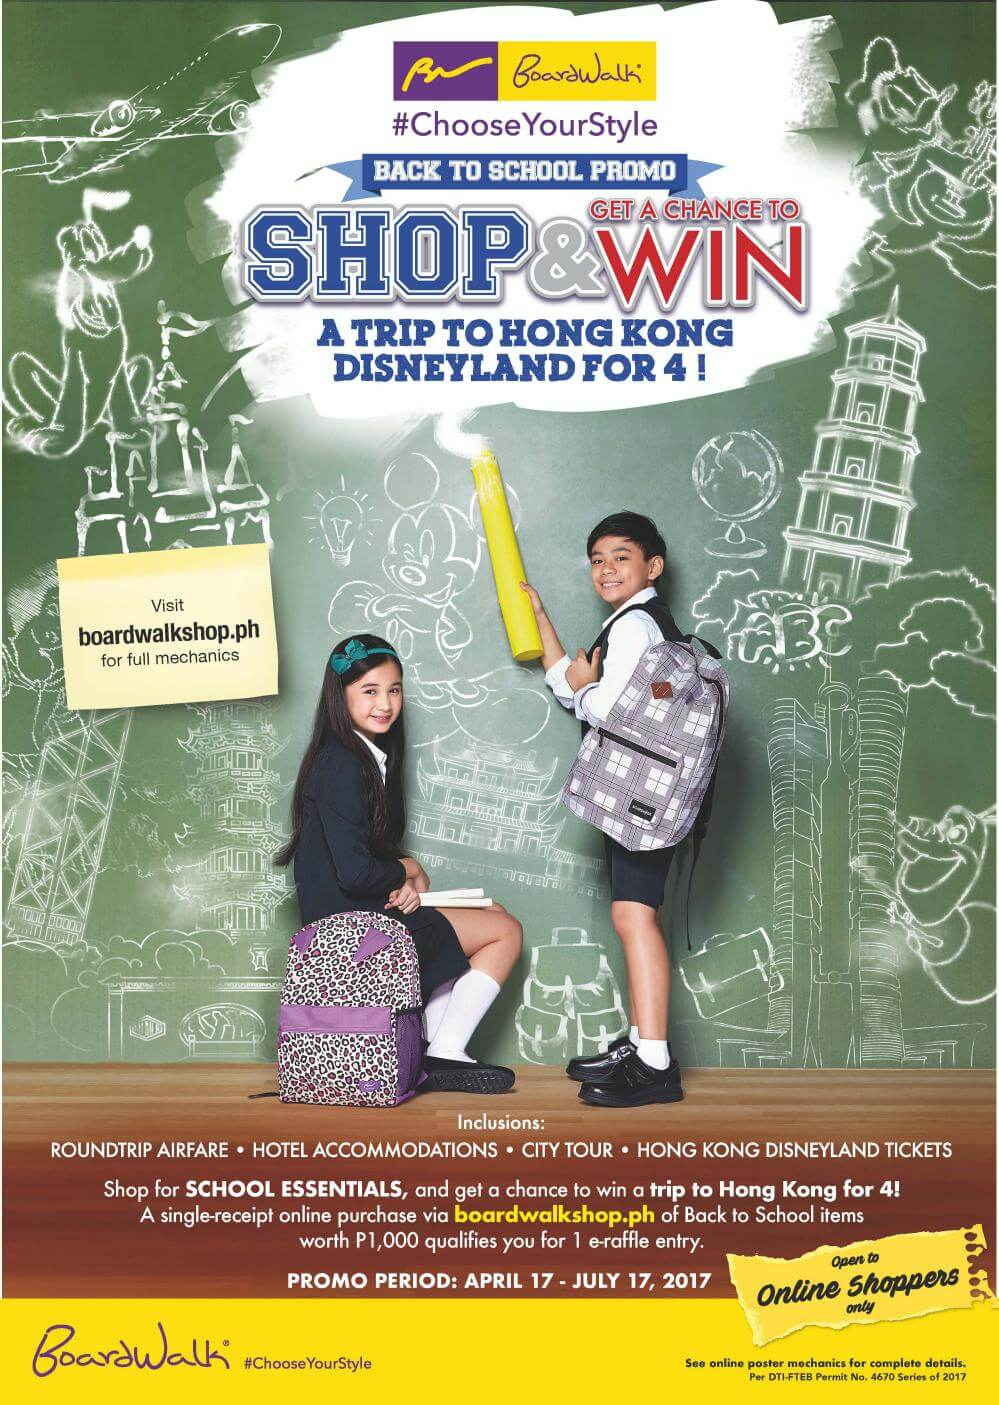 Boardwalk's Shop and Win a Trip to HongKong Disneyland